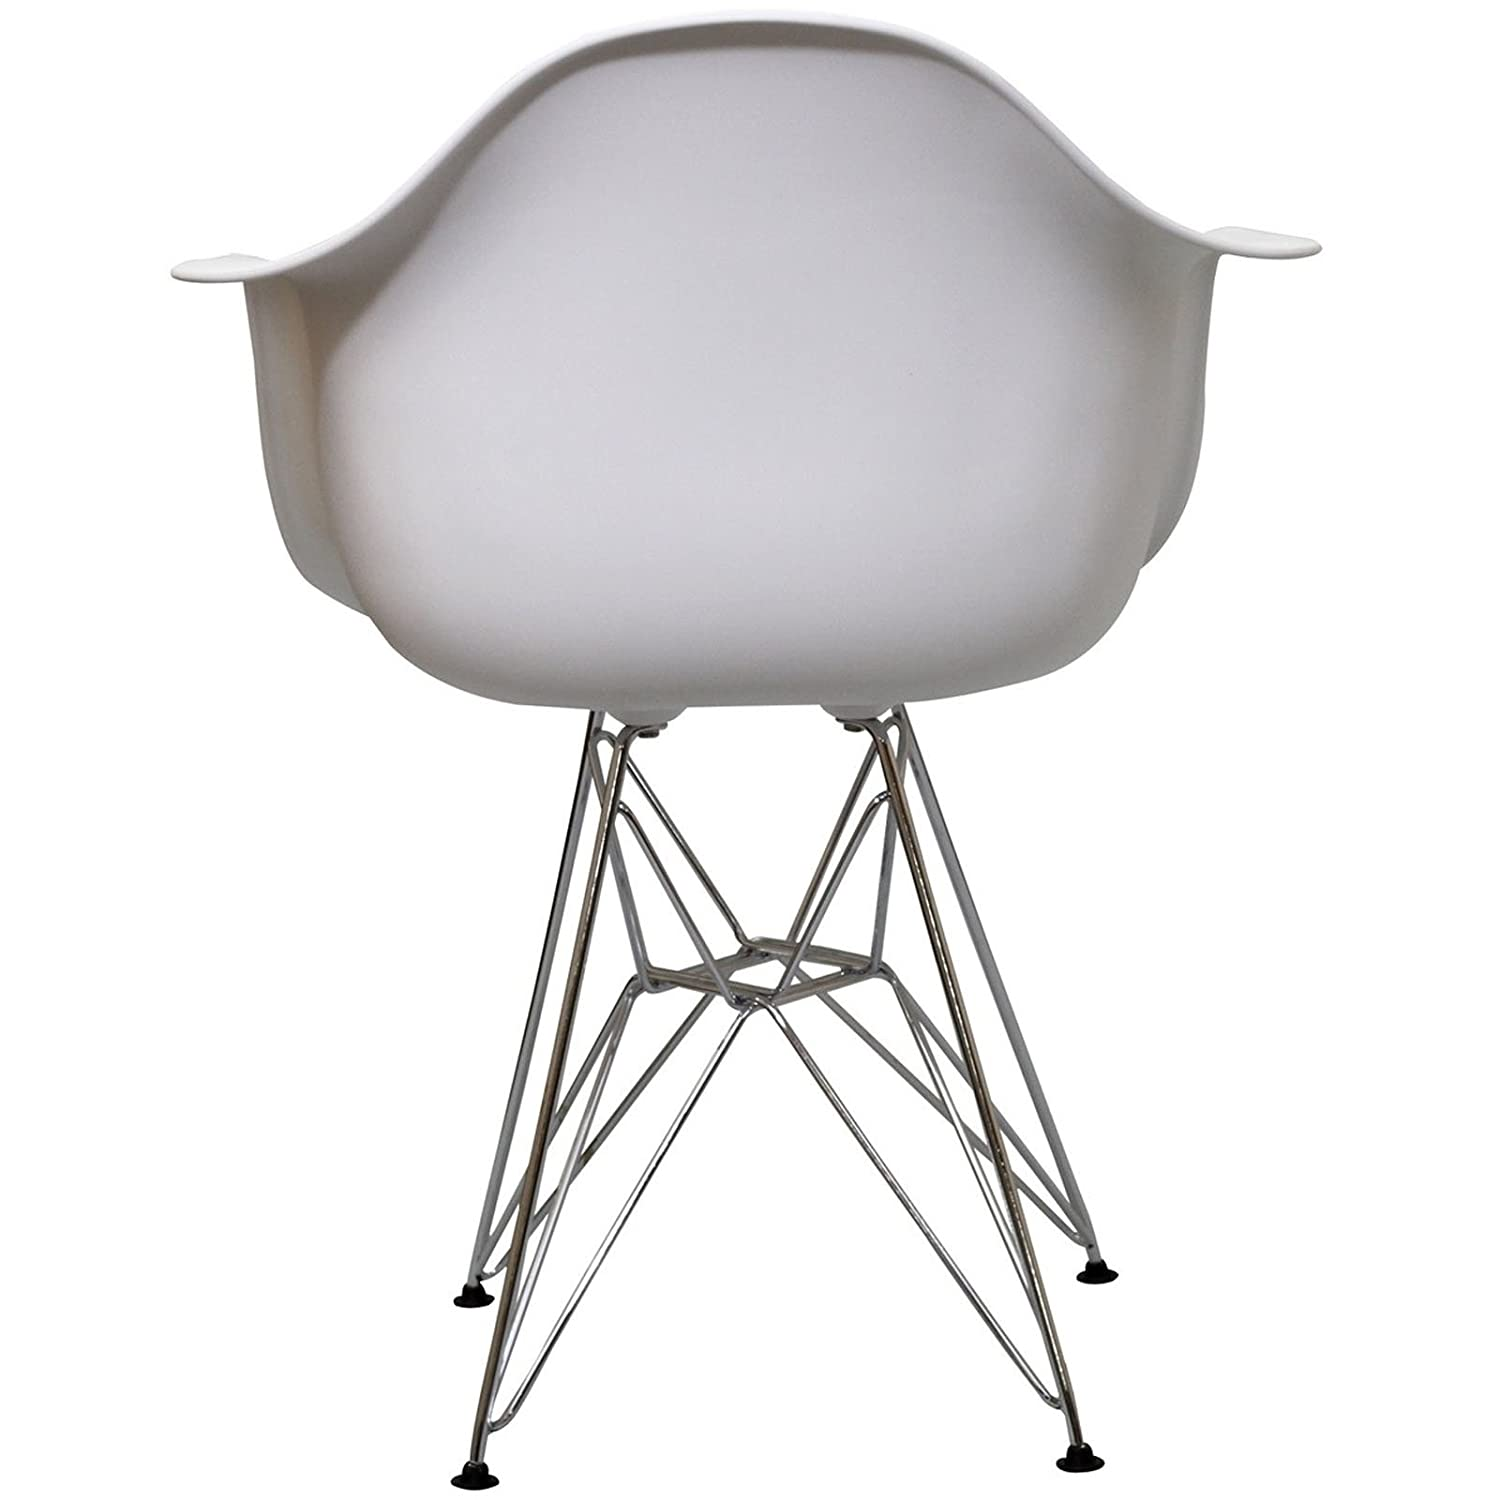 Amazoncom Modway Paris Wire Armchair in White Chairs